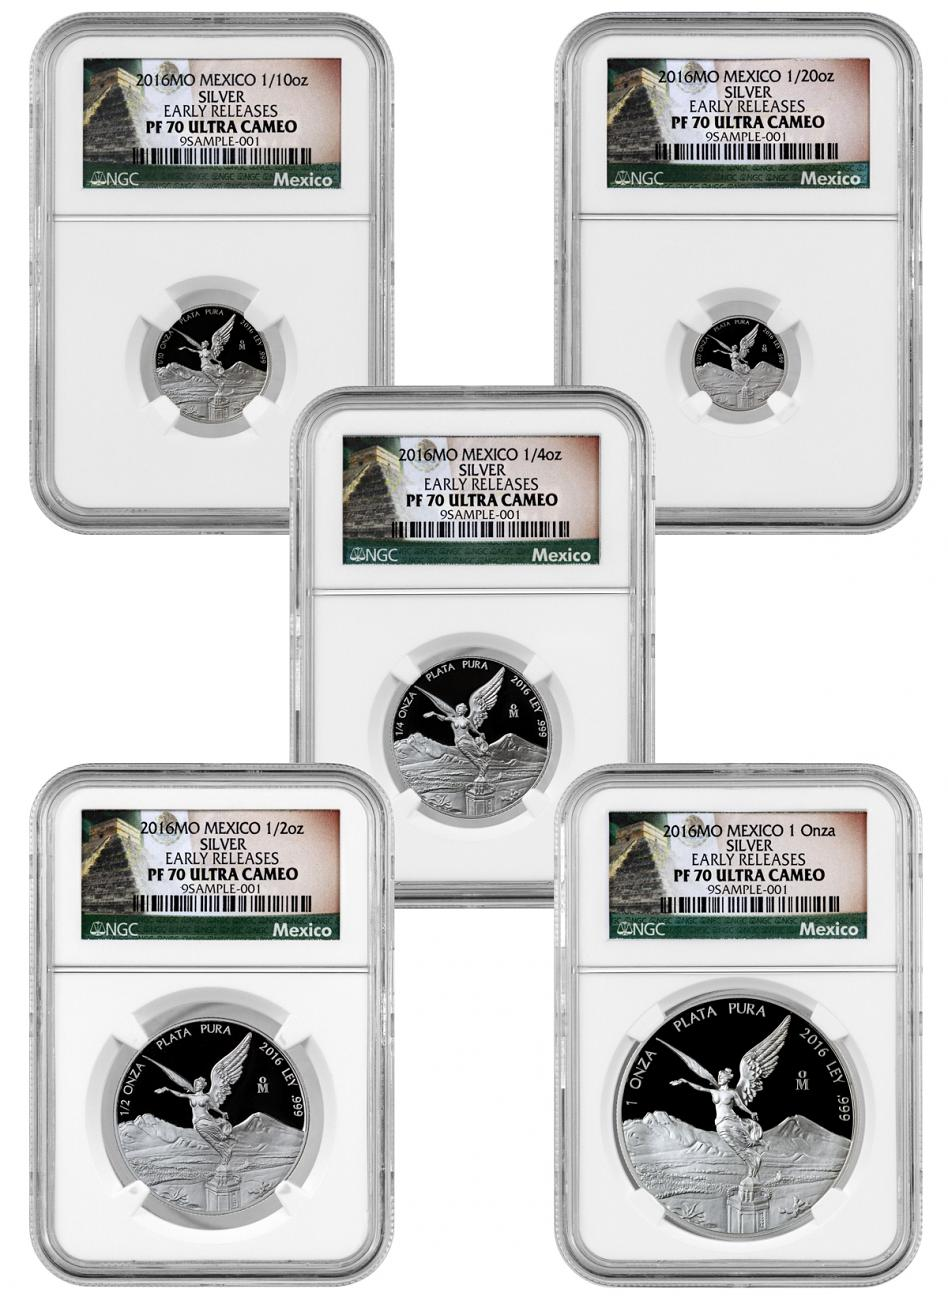 2016-Mo Mexico Proof Silver Libertad Onza - Set of 5 Coins - NGC PF70 UC Early Releases (Mexico Label)